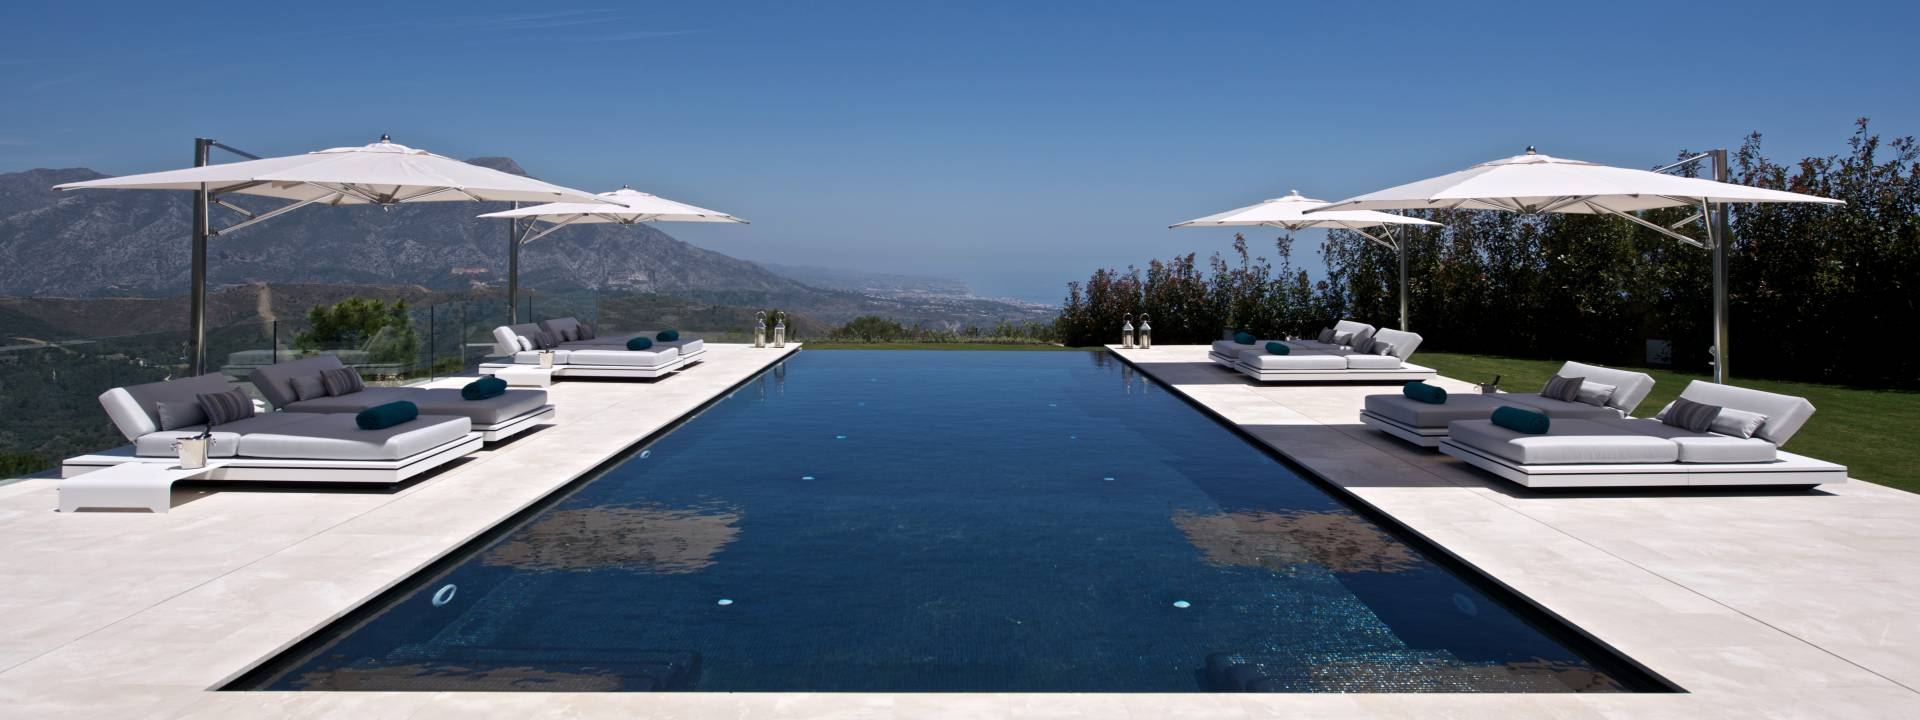 Exclusive Holiday Villa with spectacular swimming pool by Yvette Taylor London